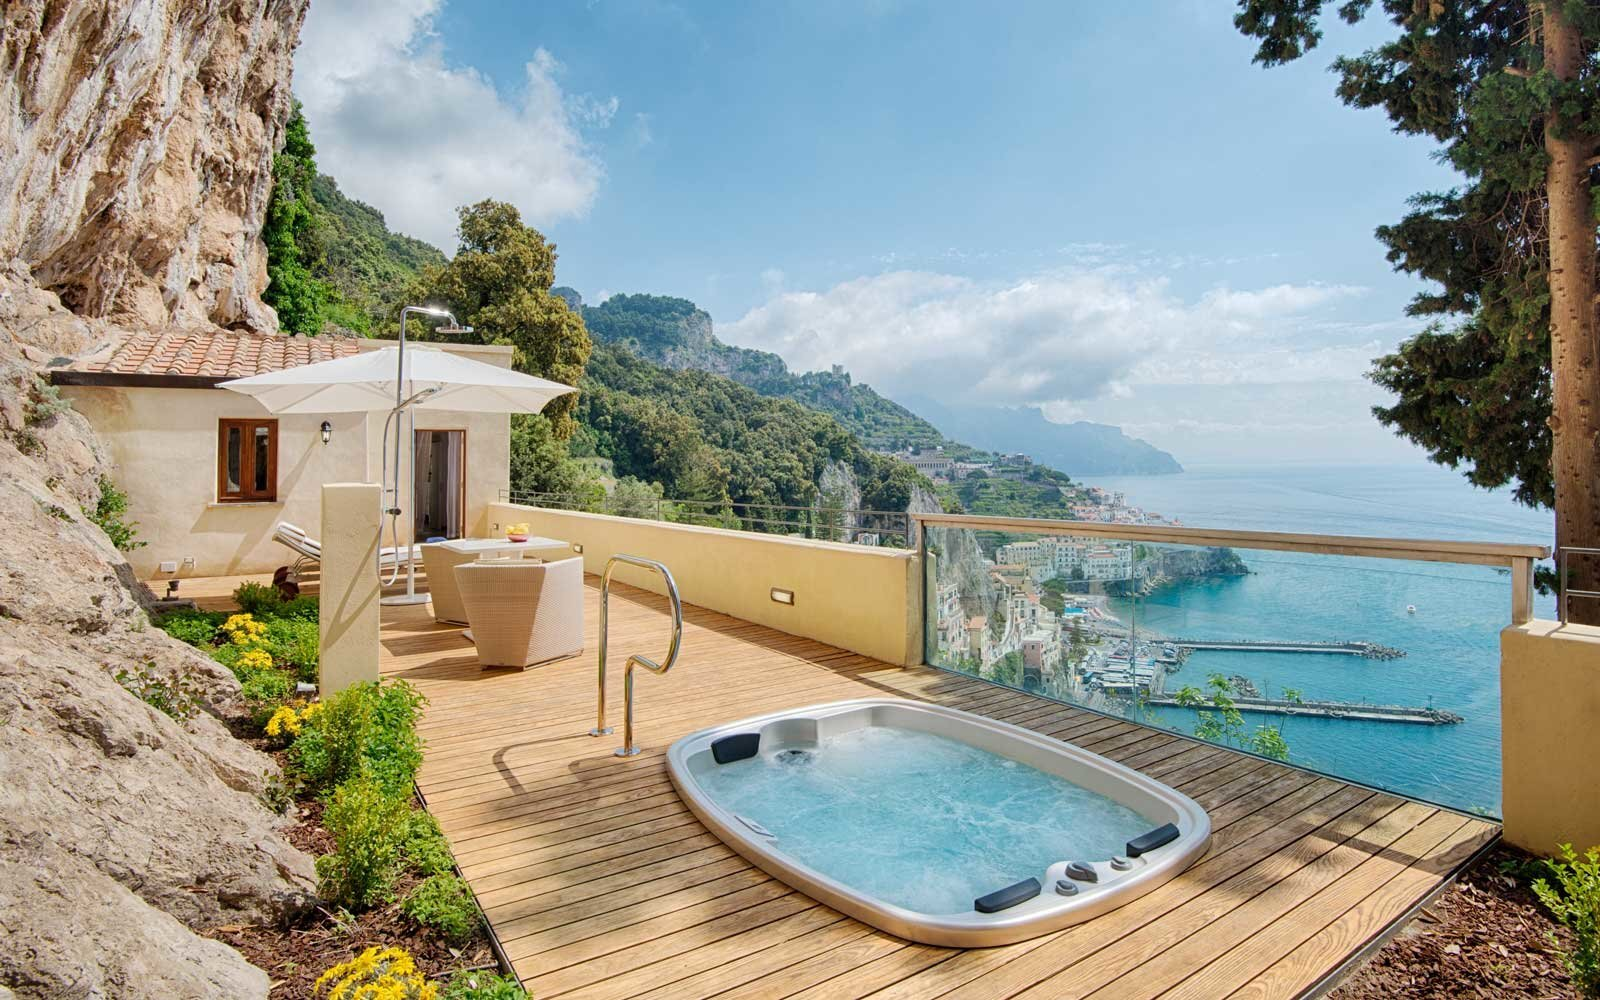 bd598ca04605 20 Luxury Vacations That Are Surprisingly Affordable